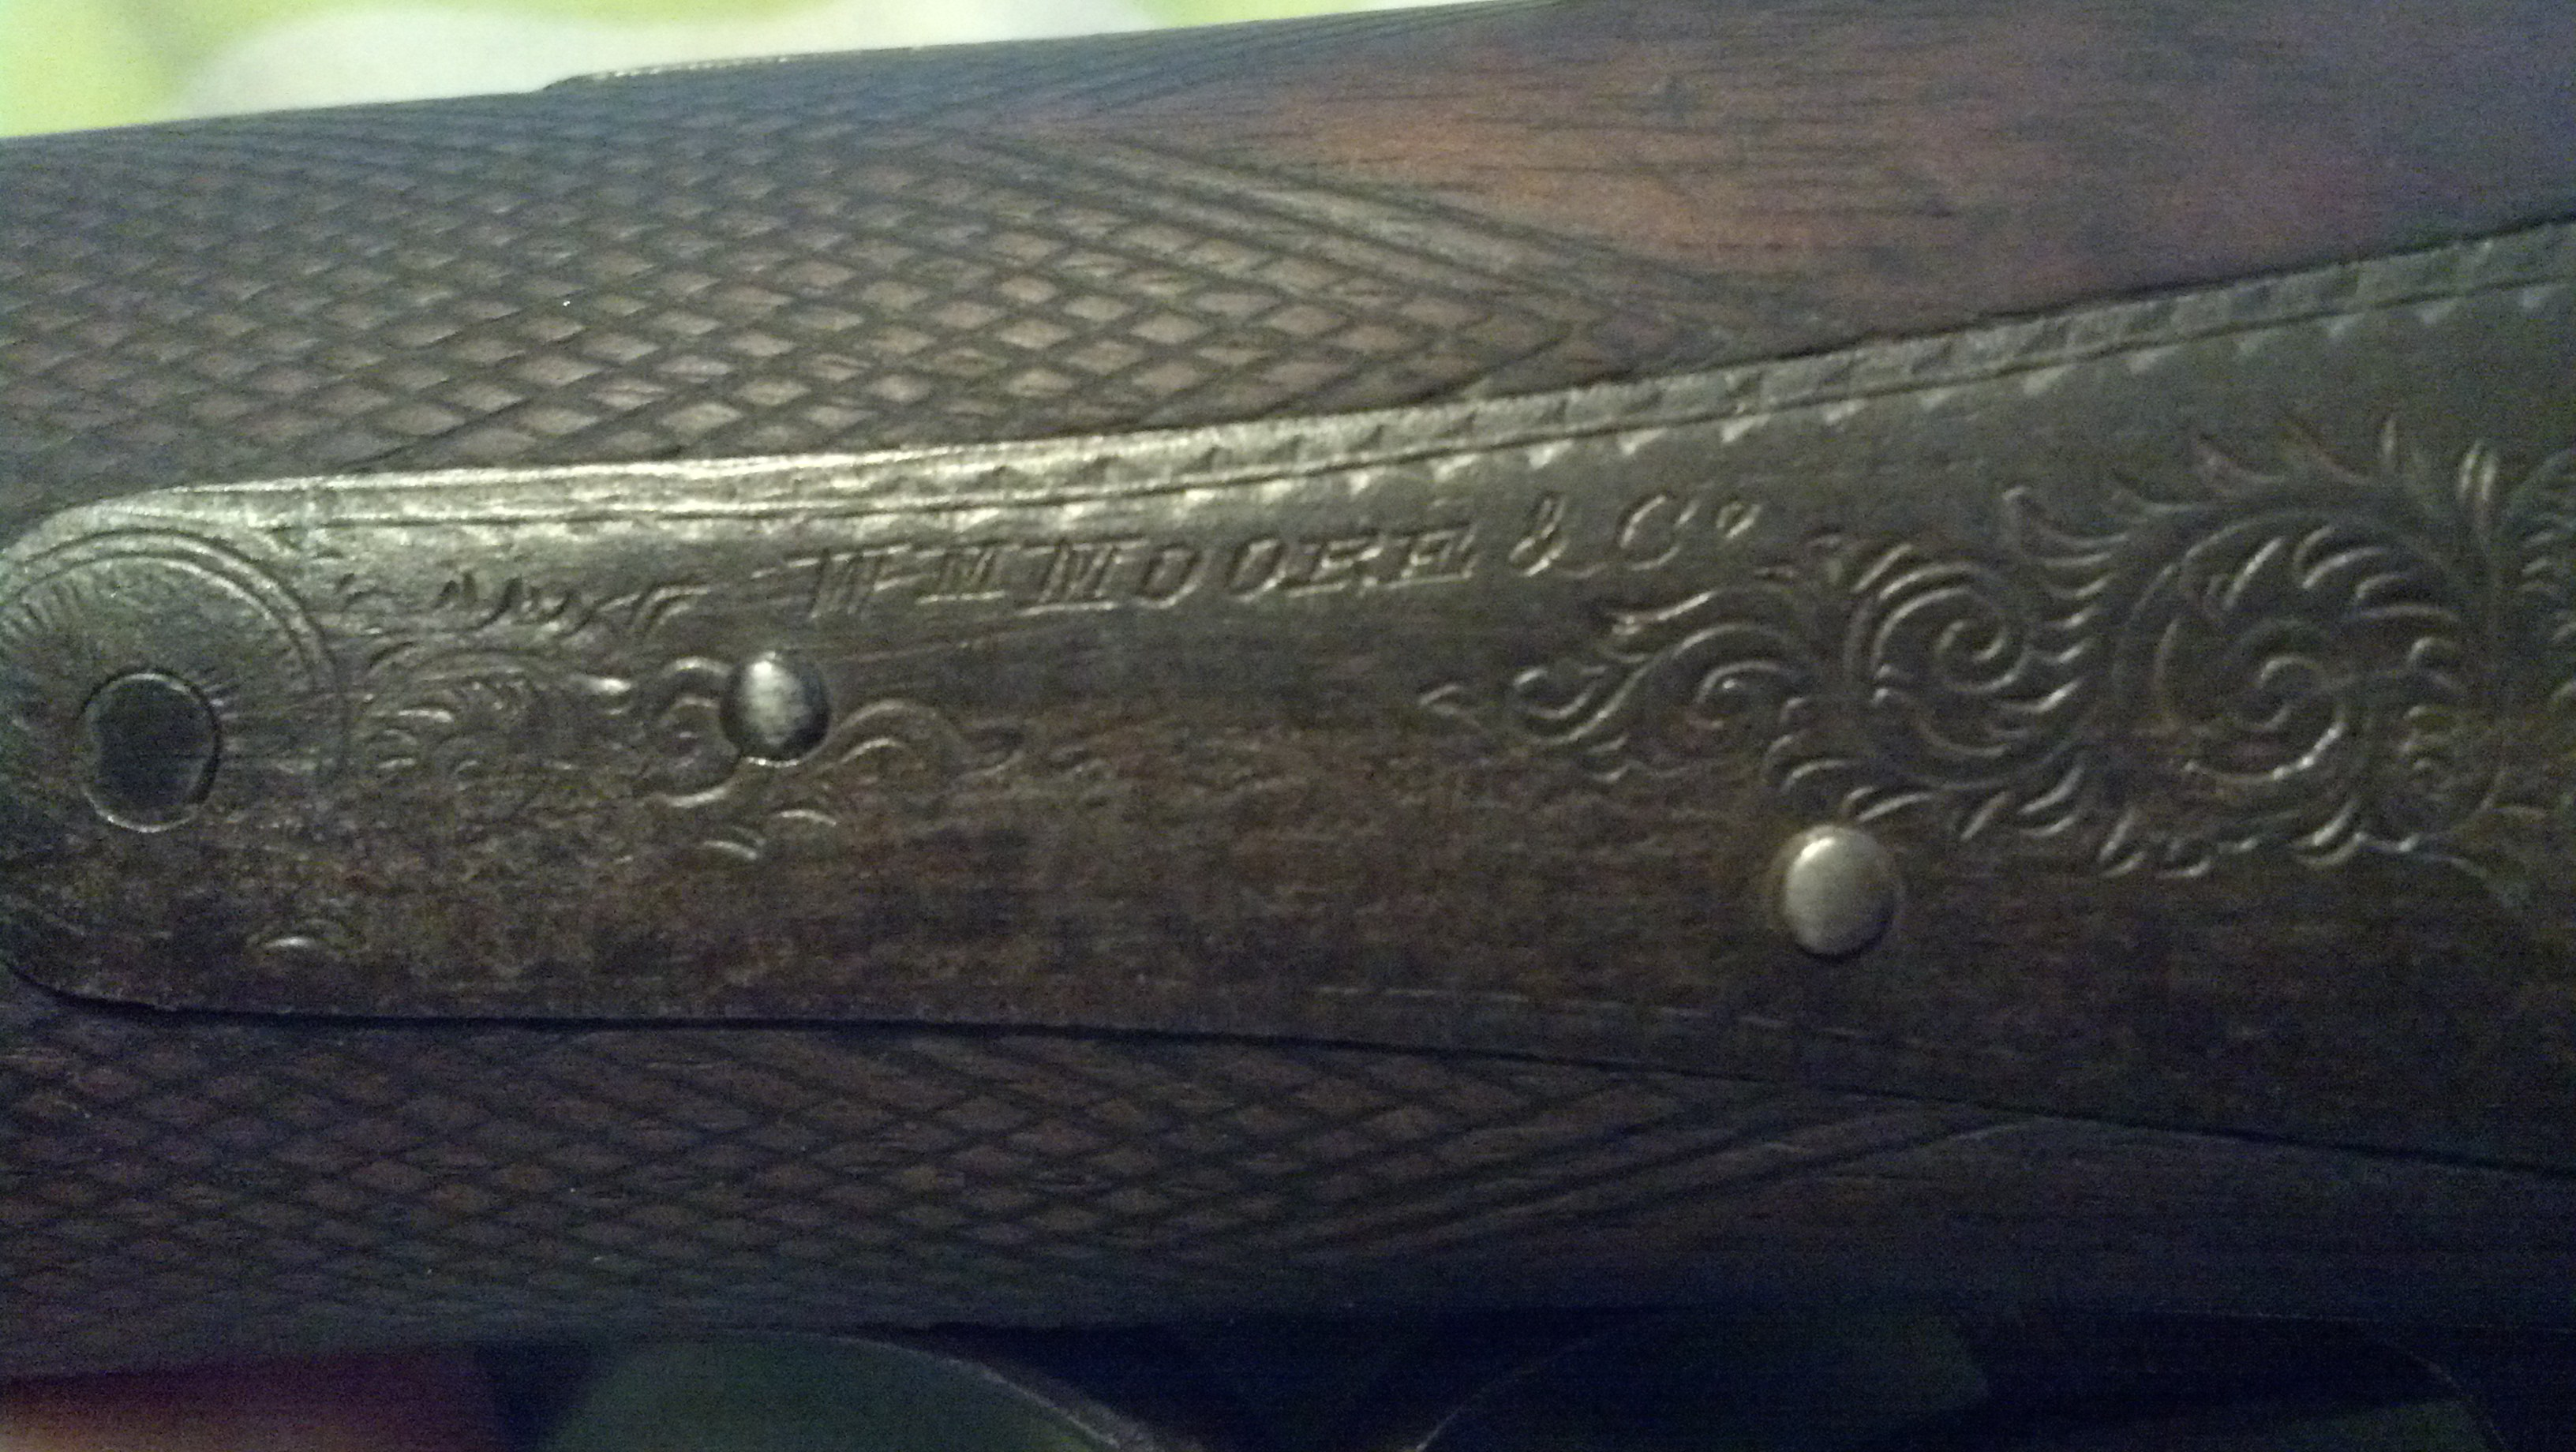 Recent Acquisition: Wm Moore & Co. Damascus 12 ga Center fire Side by Side-img_20130629_065411_757.jpg